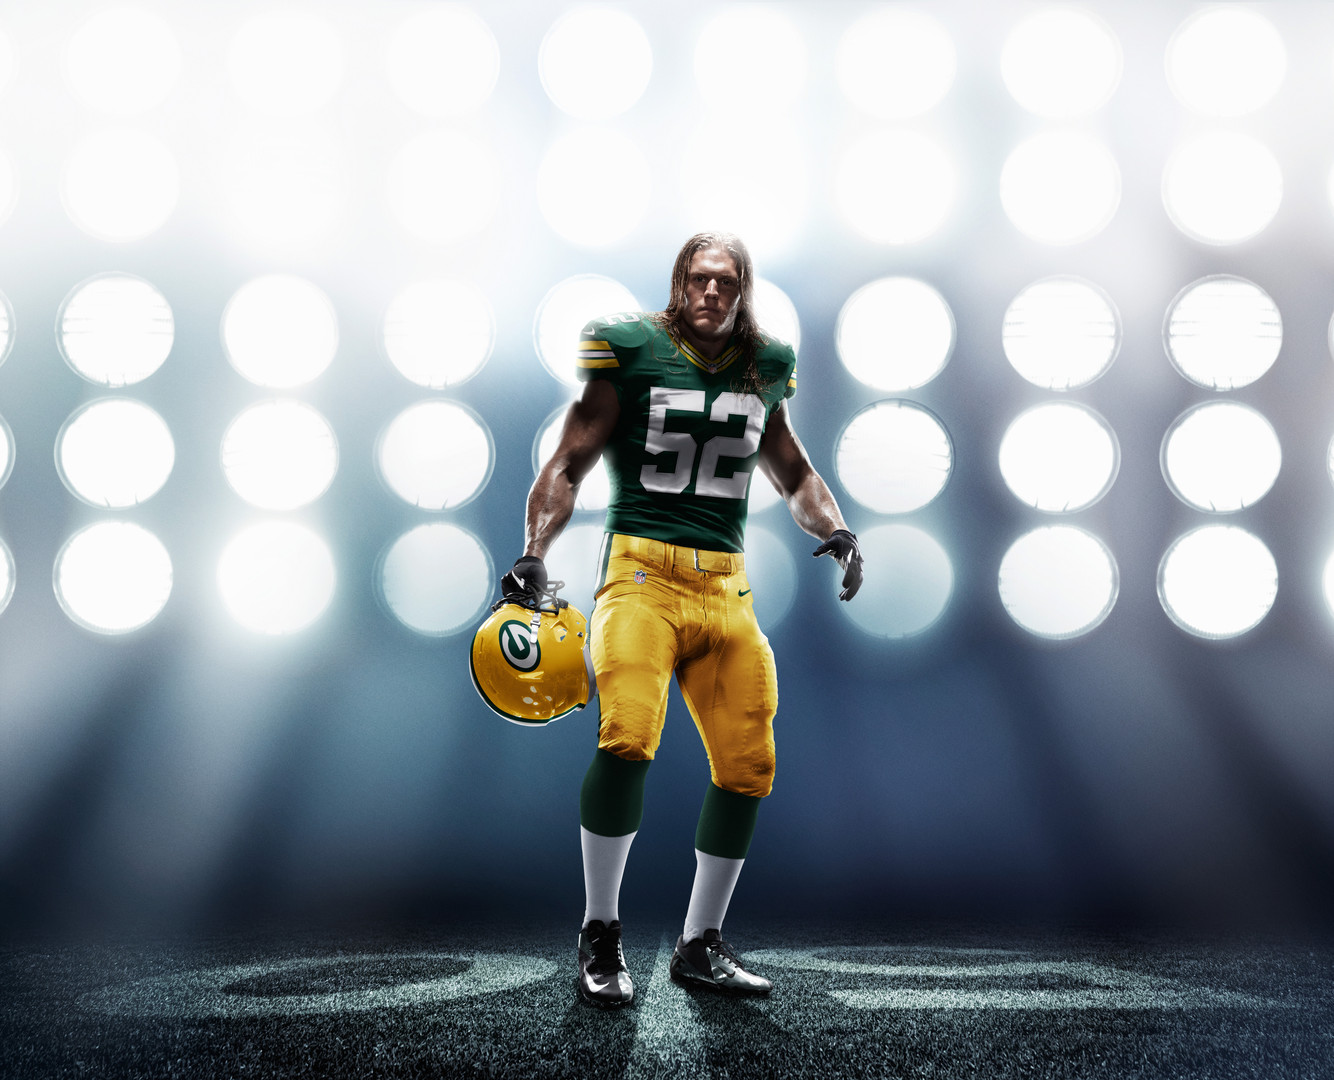 SU12_AT_MATTHEWS_NFL_Packers Uniform_001